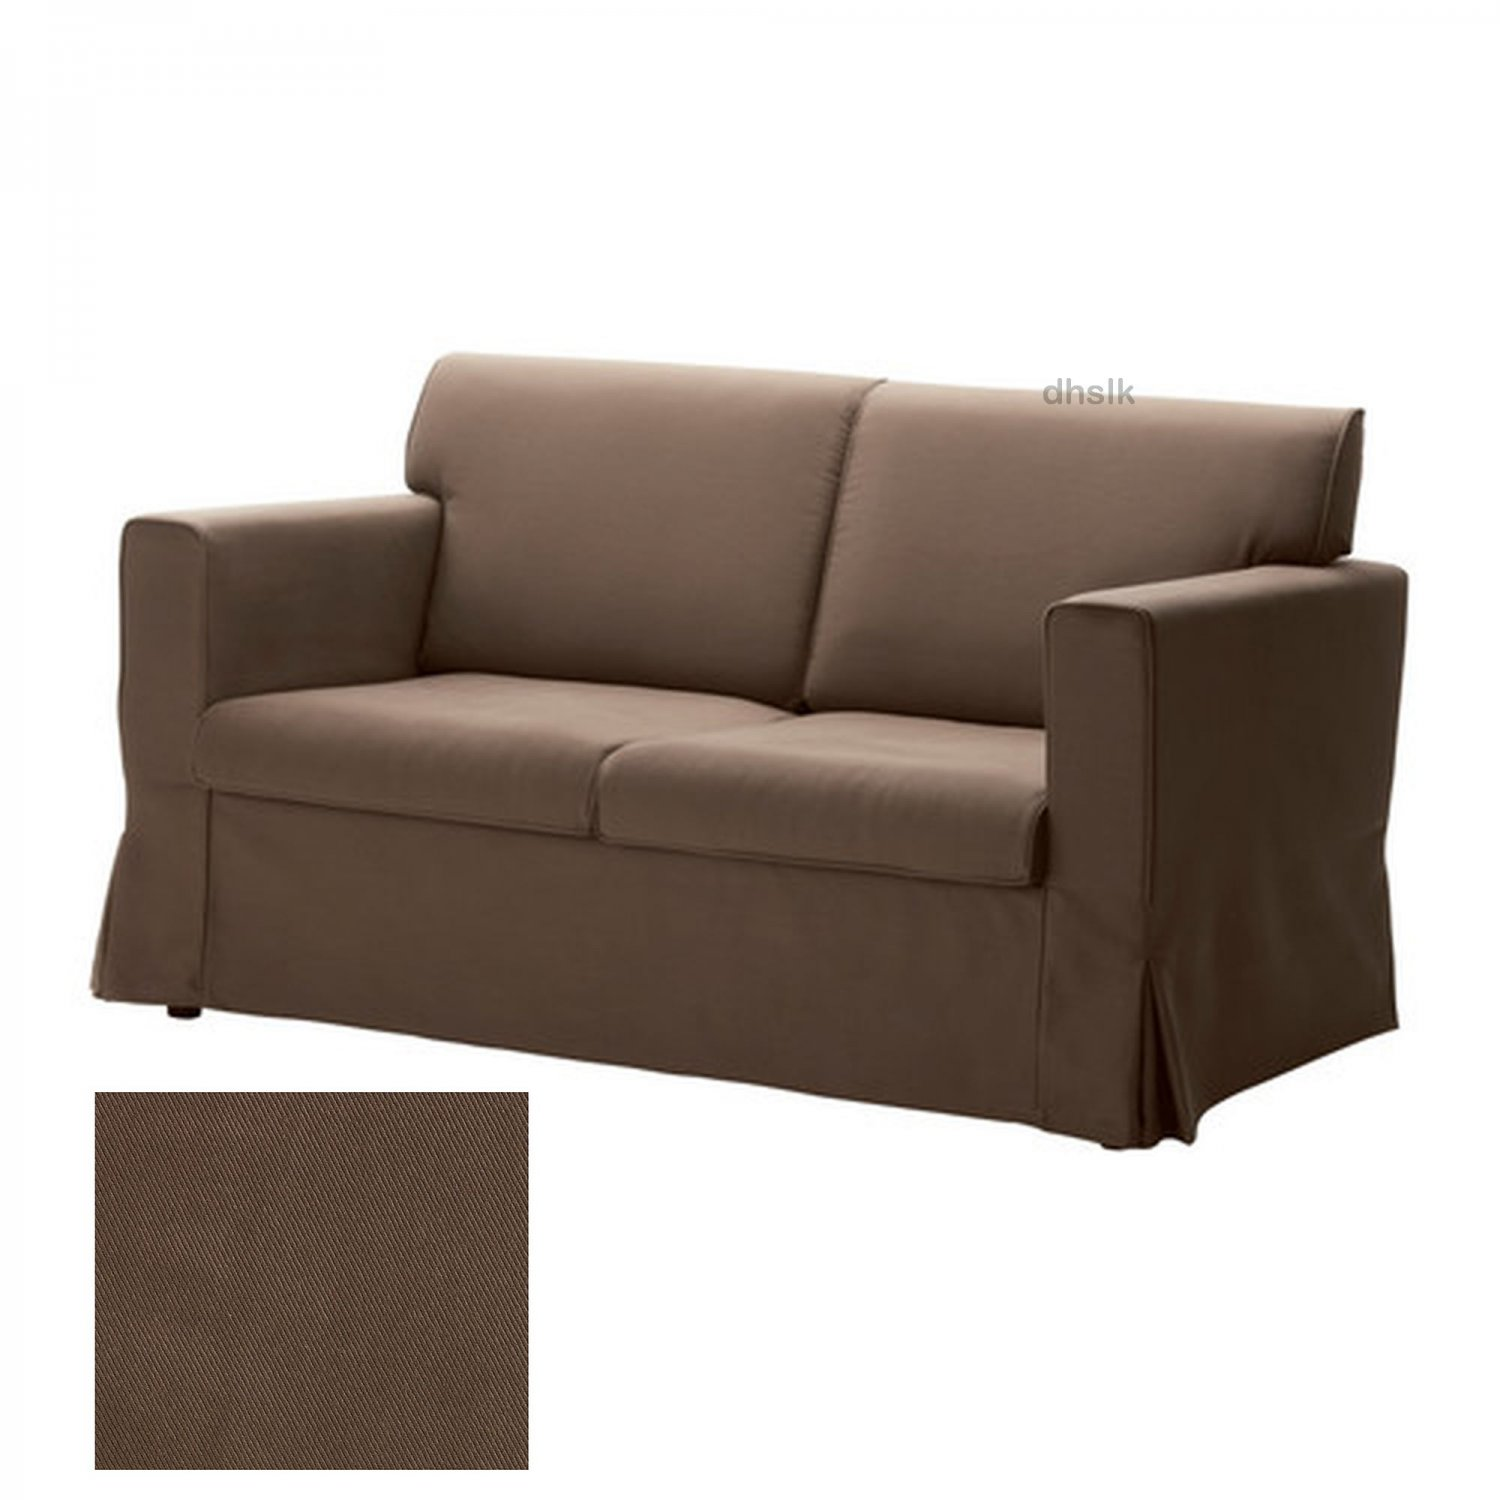 Ikea sandby 2 seat sofa slipcover loveseat cover blekinge brown Cover for loveseat